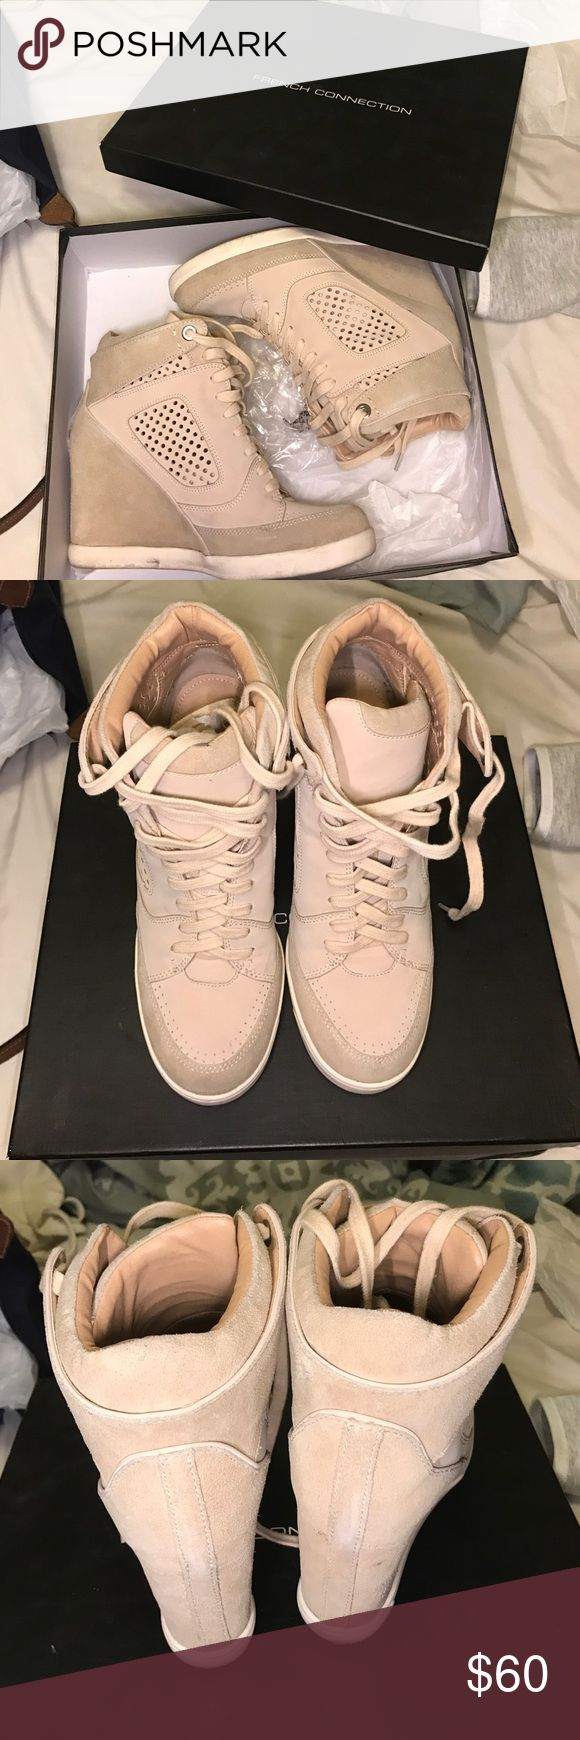 French connection Marla wedge sneakers Only worn a couple of times still in really good condition color is nude French Connection Shoes Sneakers